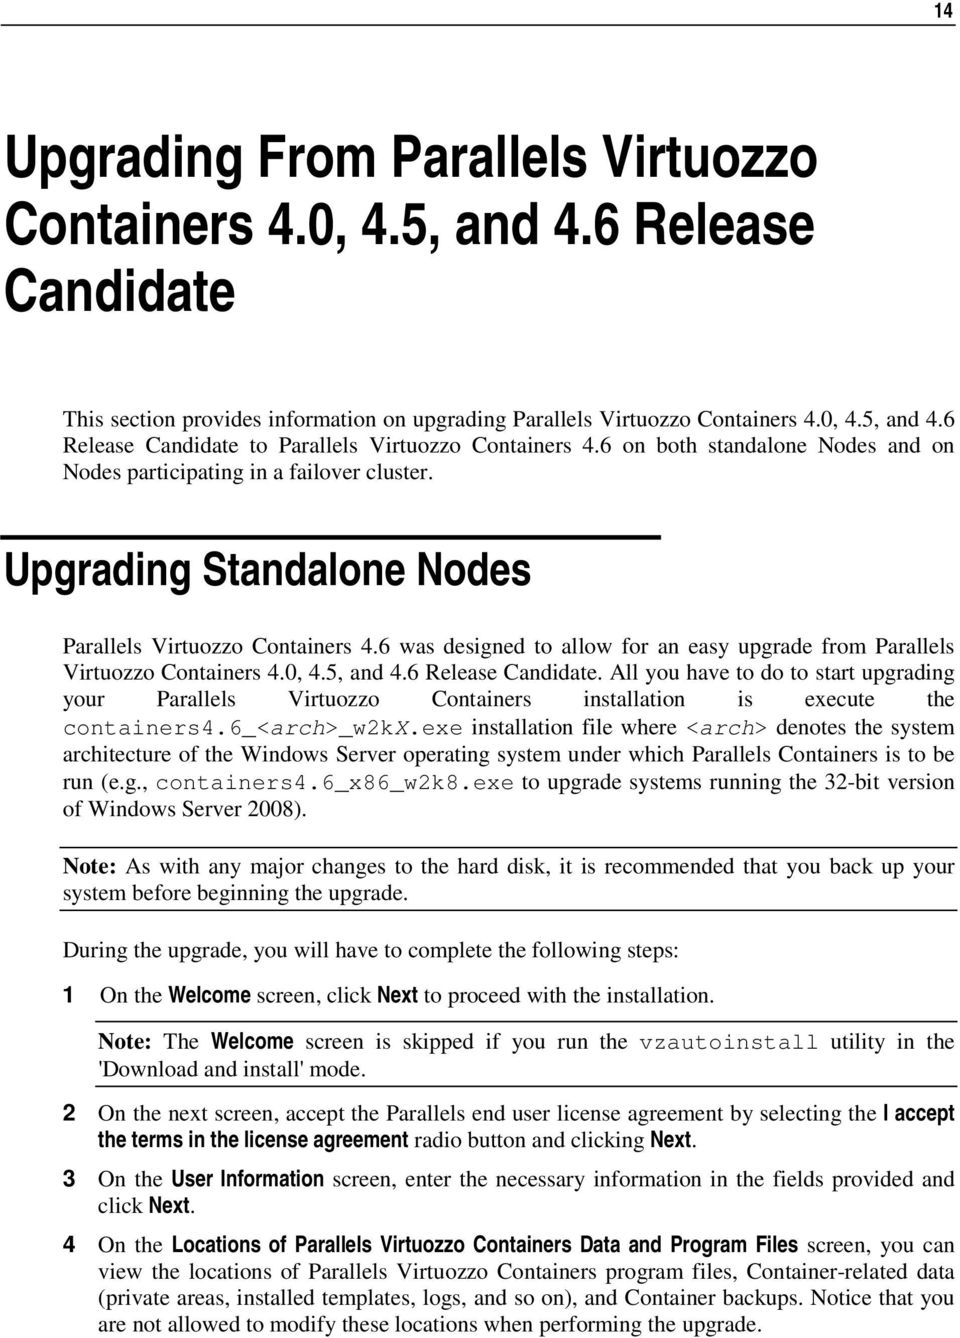 6 was designed to allow for an easy upgrade from Parallels Virtuozzo Containers 4.0, 4.5, and 4.6 Release Candidate.